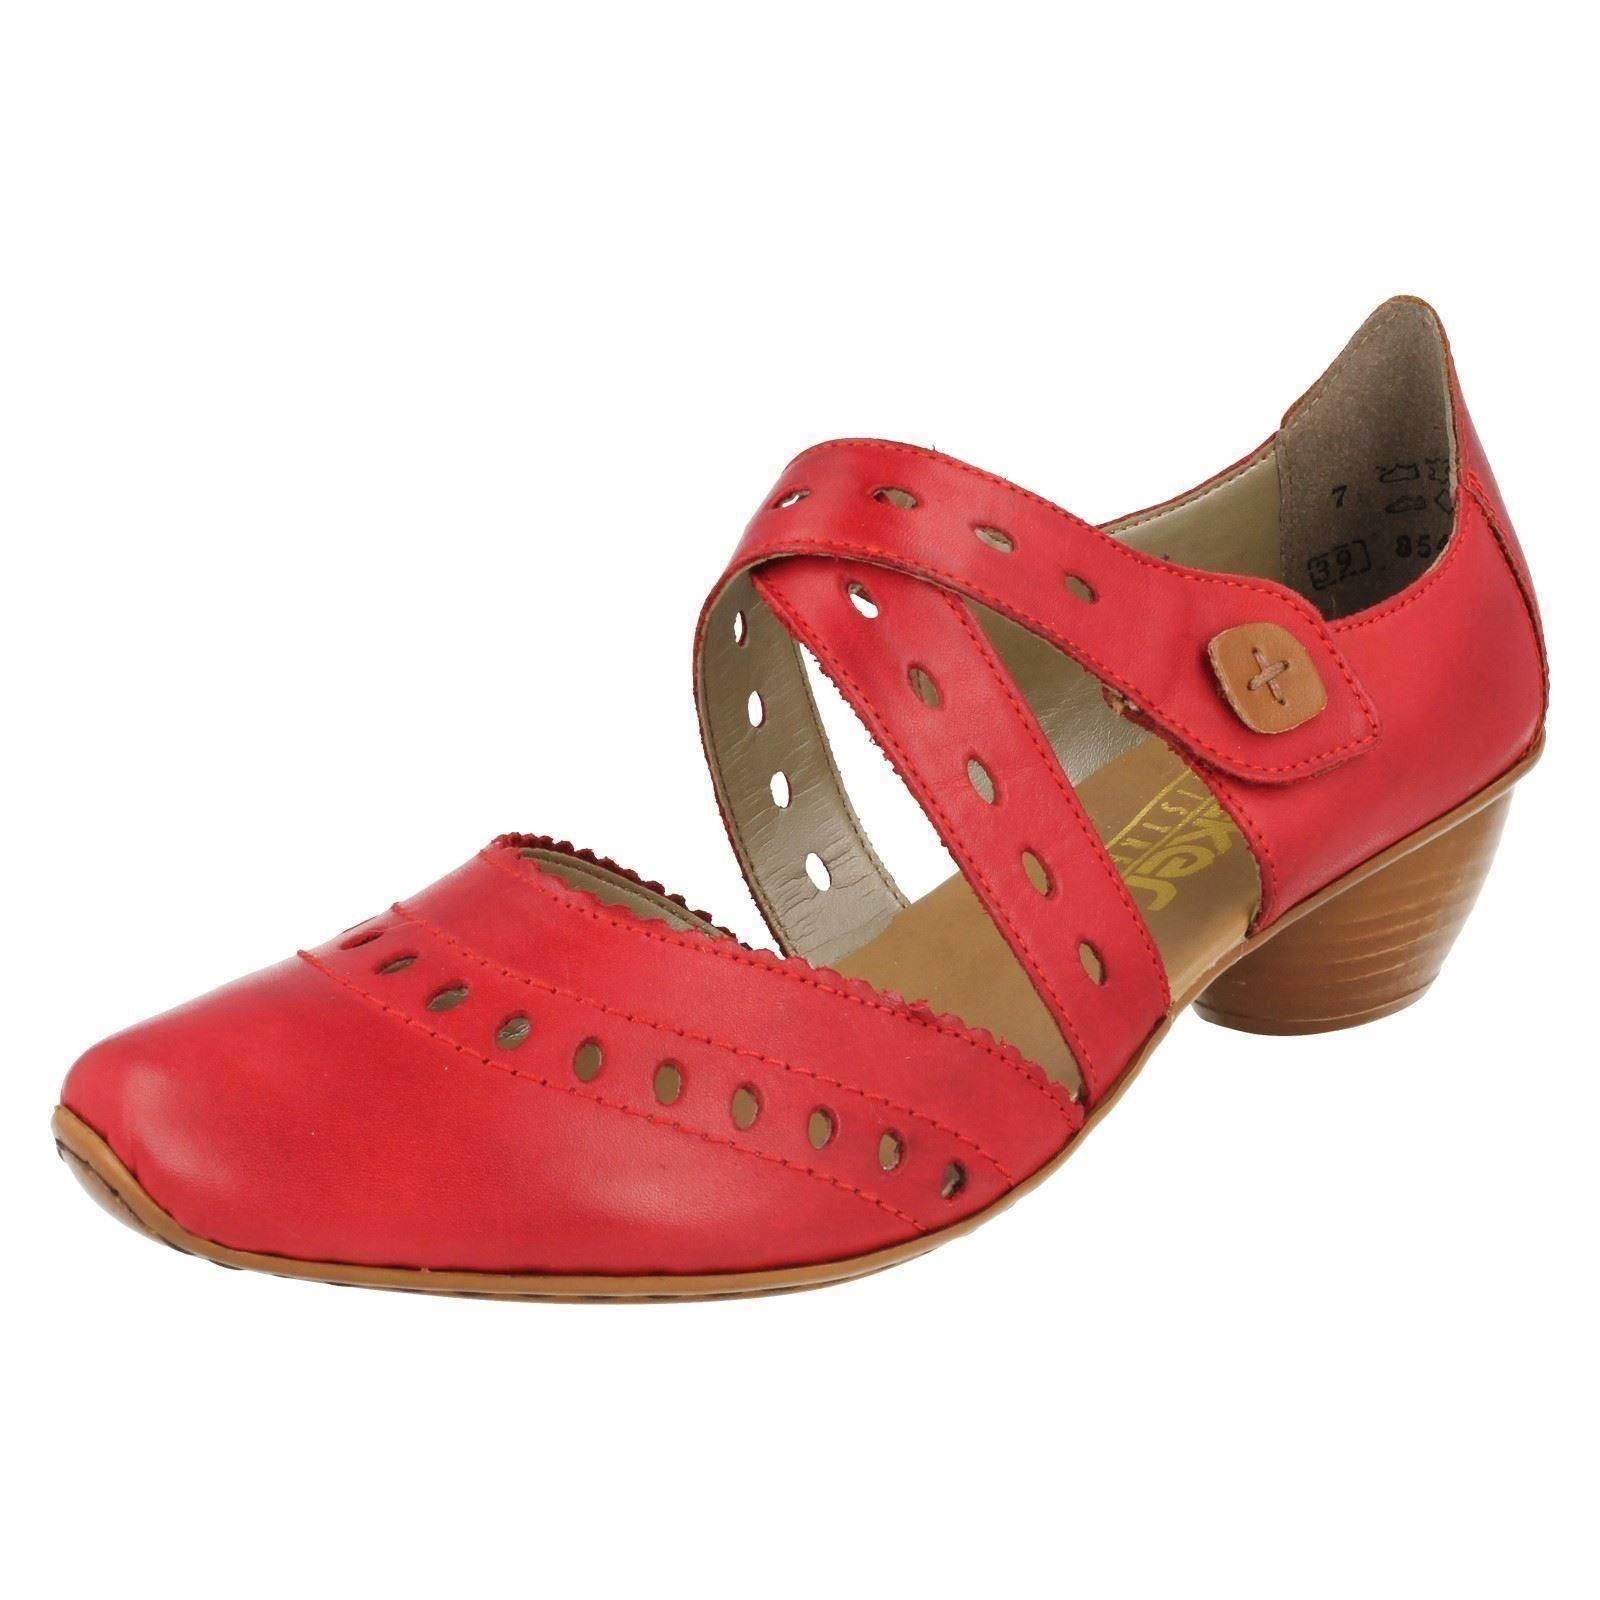 rieker shoes ladies-rieker-shoes-style-43703 ewjloib